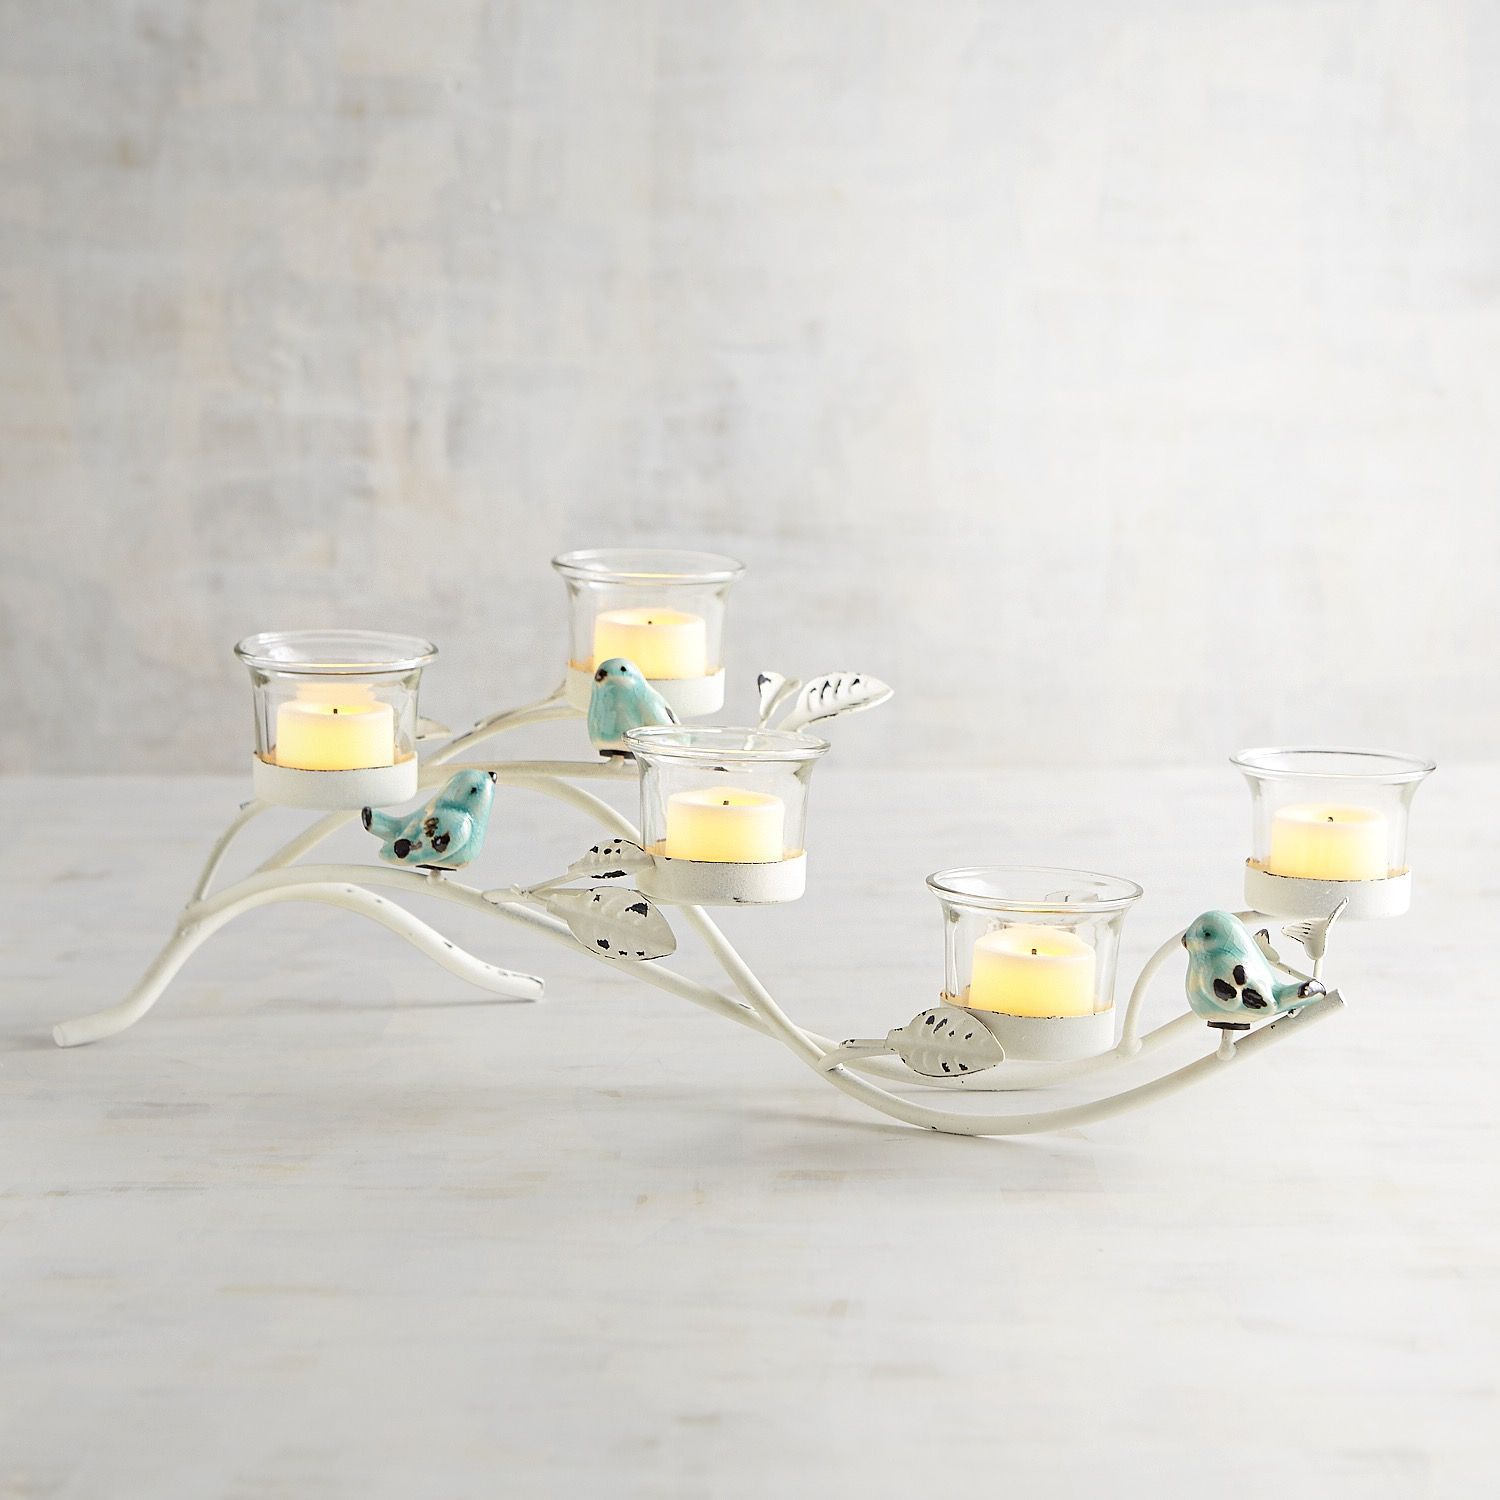 Blue bird centerpiece candle holder white centerpieces whites and